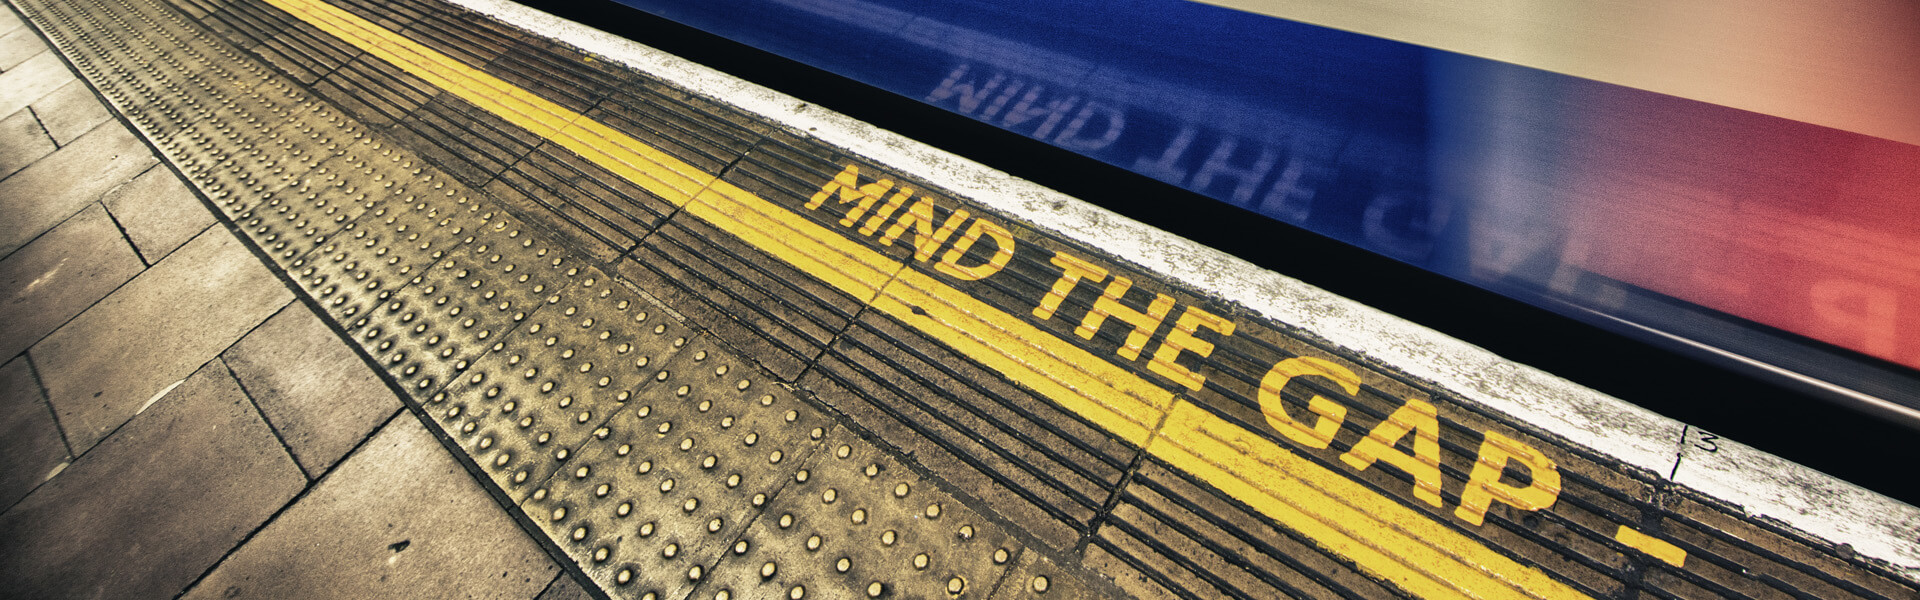 Mind the gap